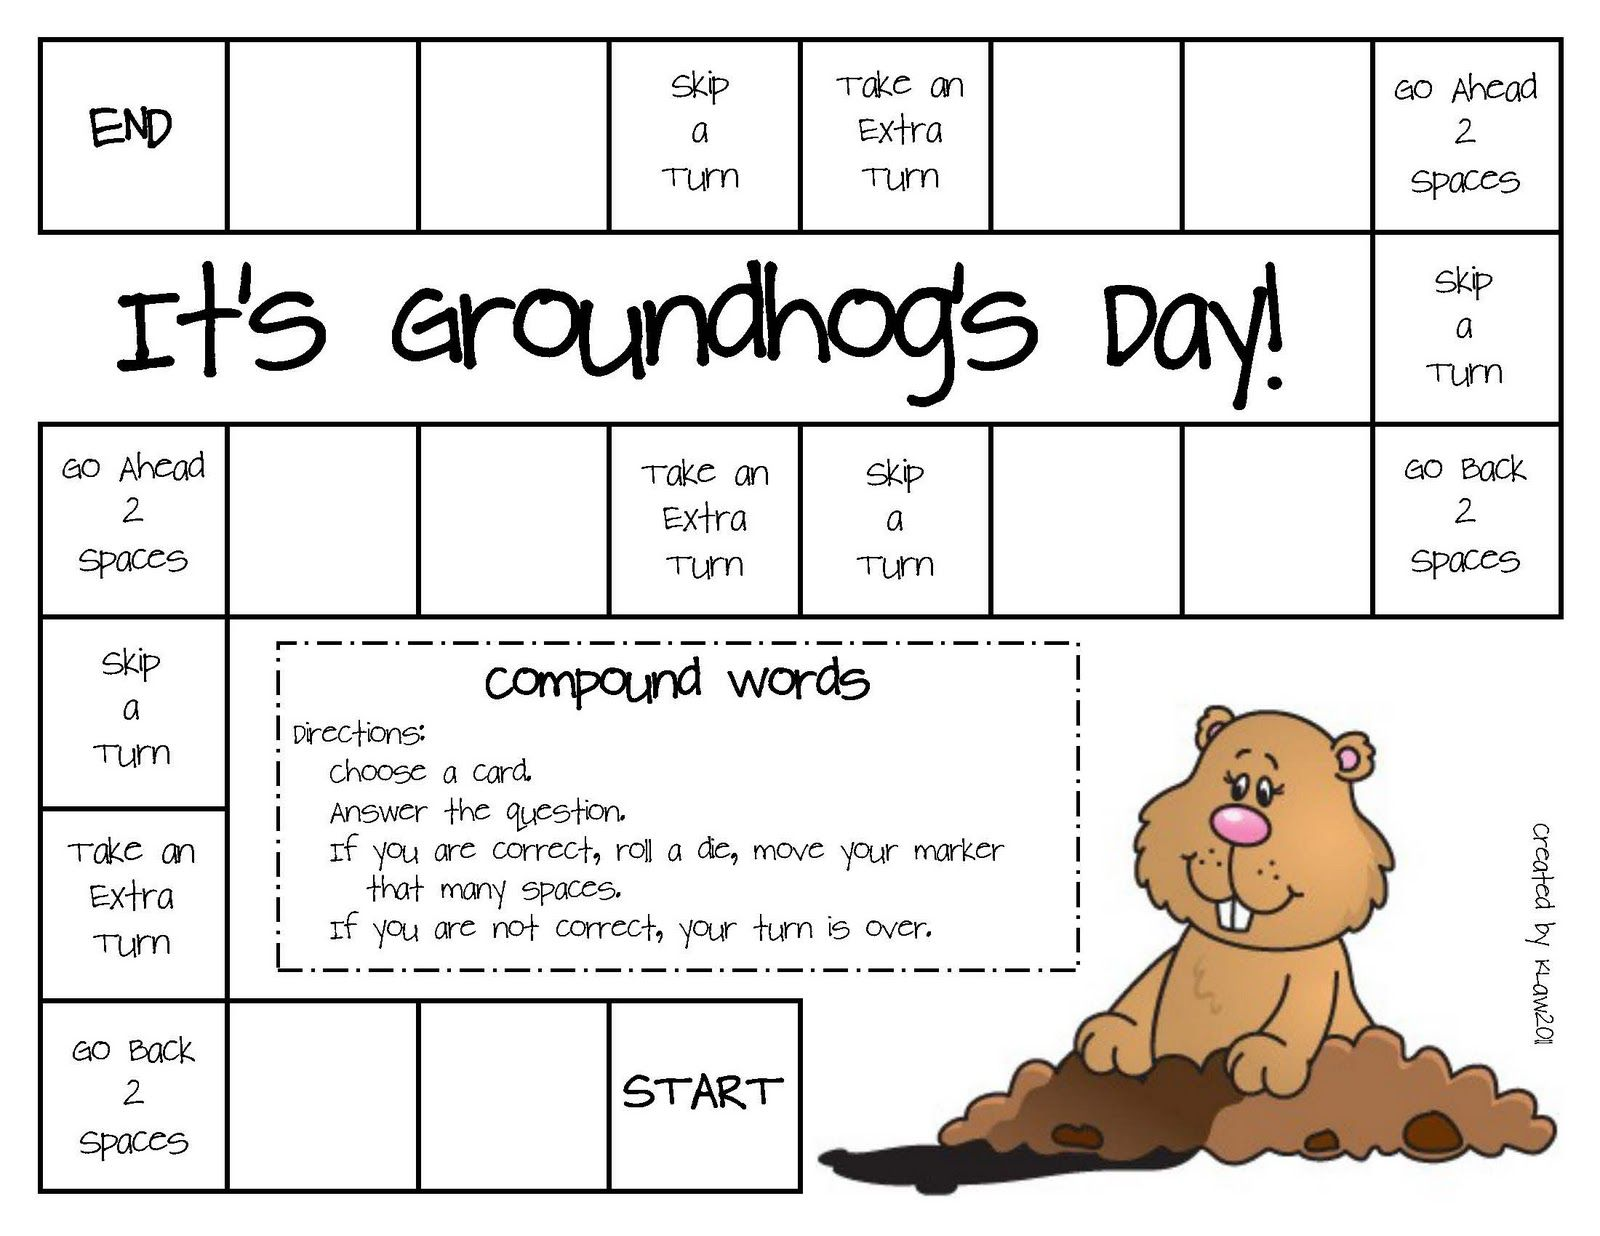 Groundhogs Day Language Game Groundhog Day Activities Groundhog Day Compound Words [ 1236 x 1600 Pixel ]